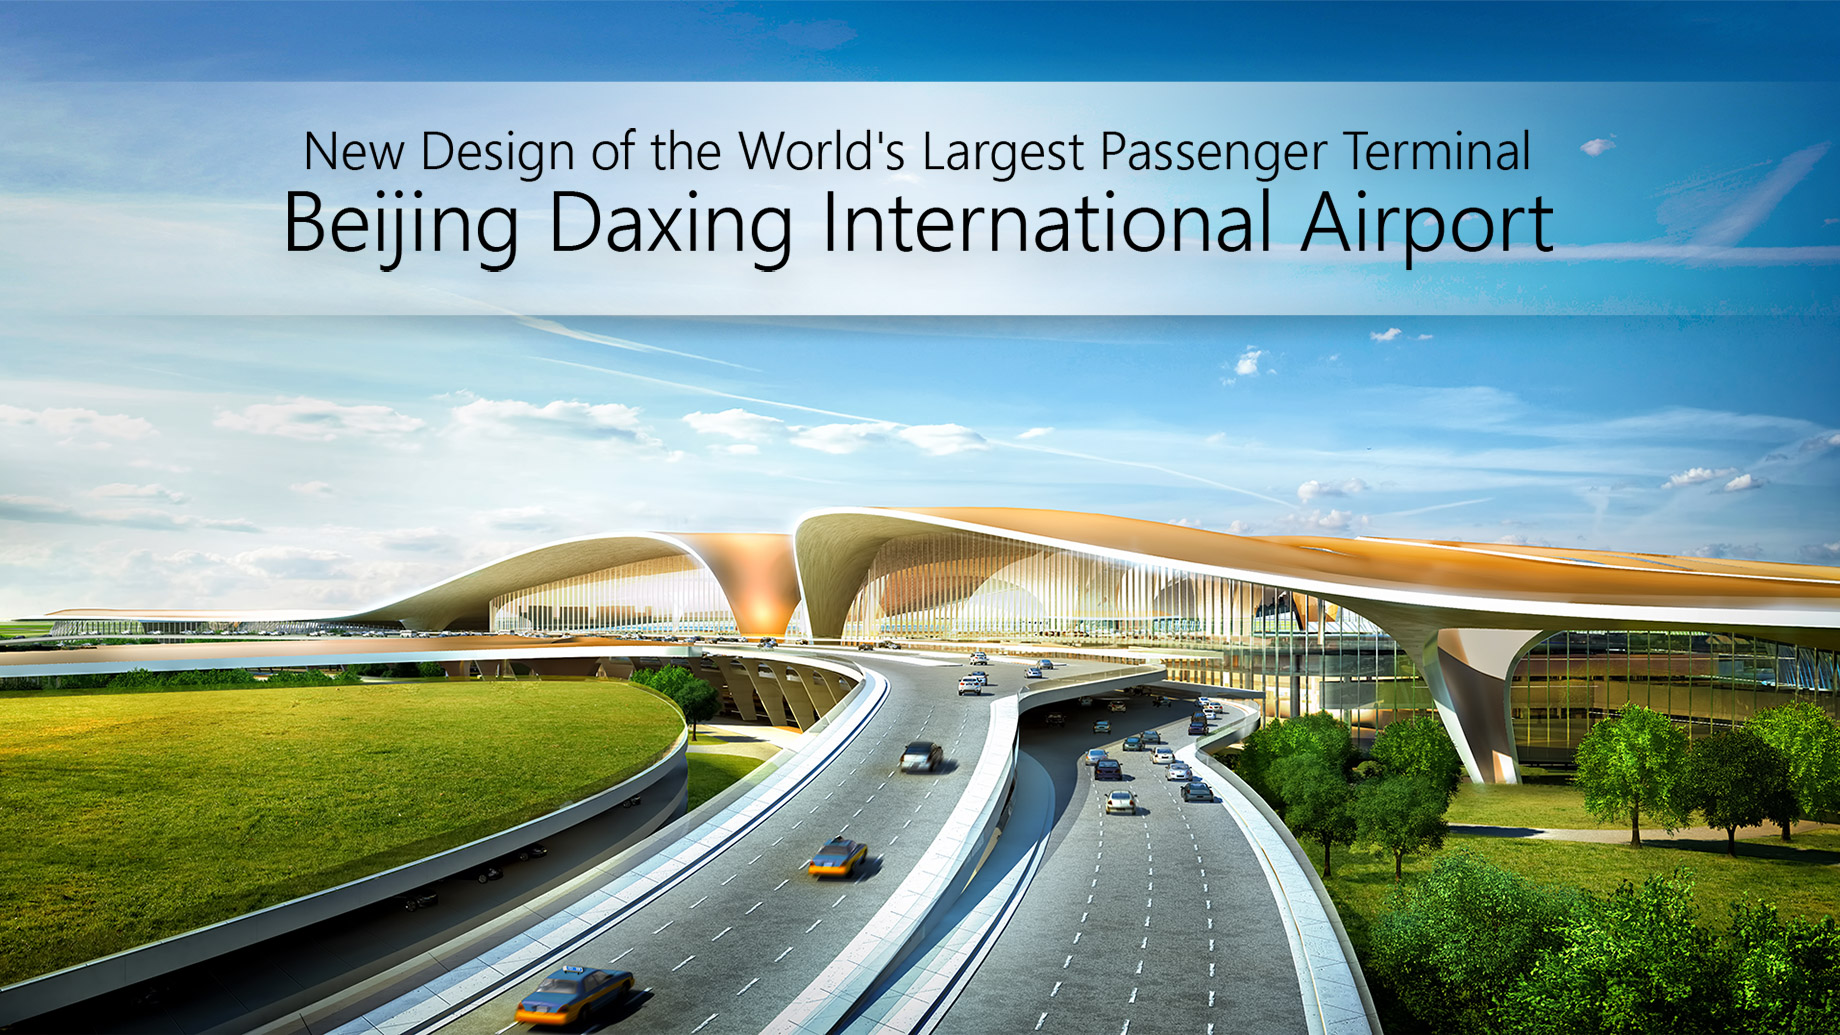 New Design of the World's Largest Passenger Terminal - Beijing Daxing International Airport